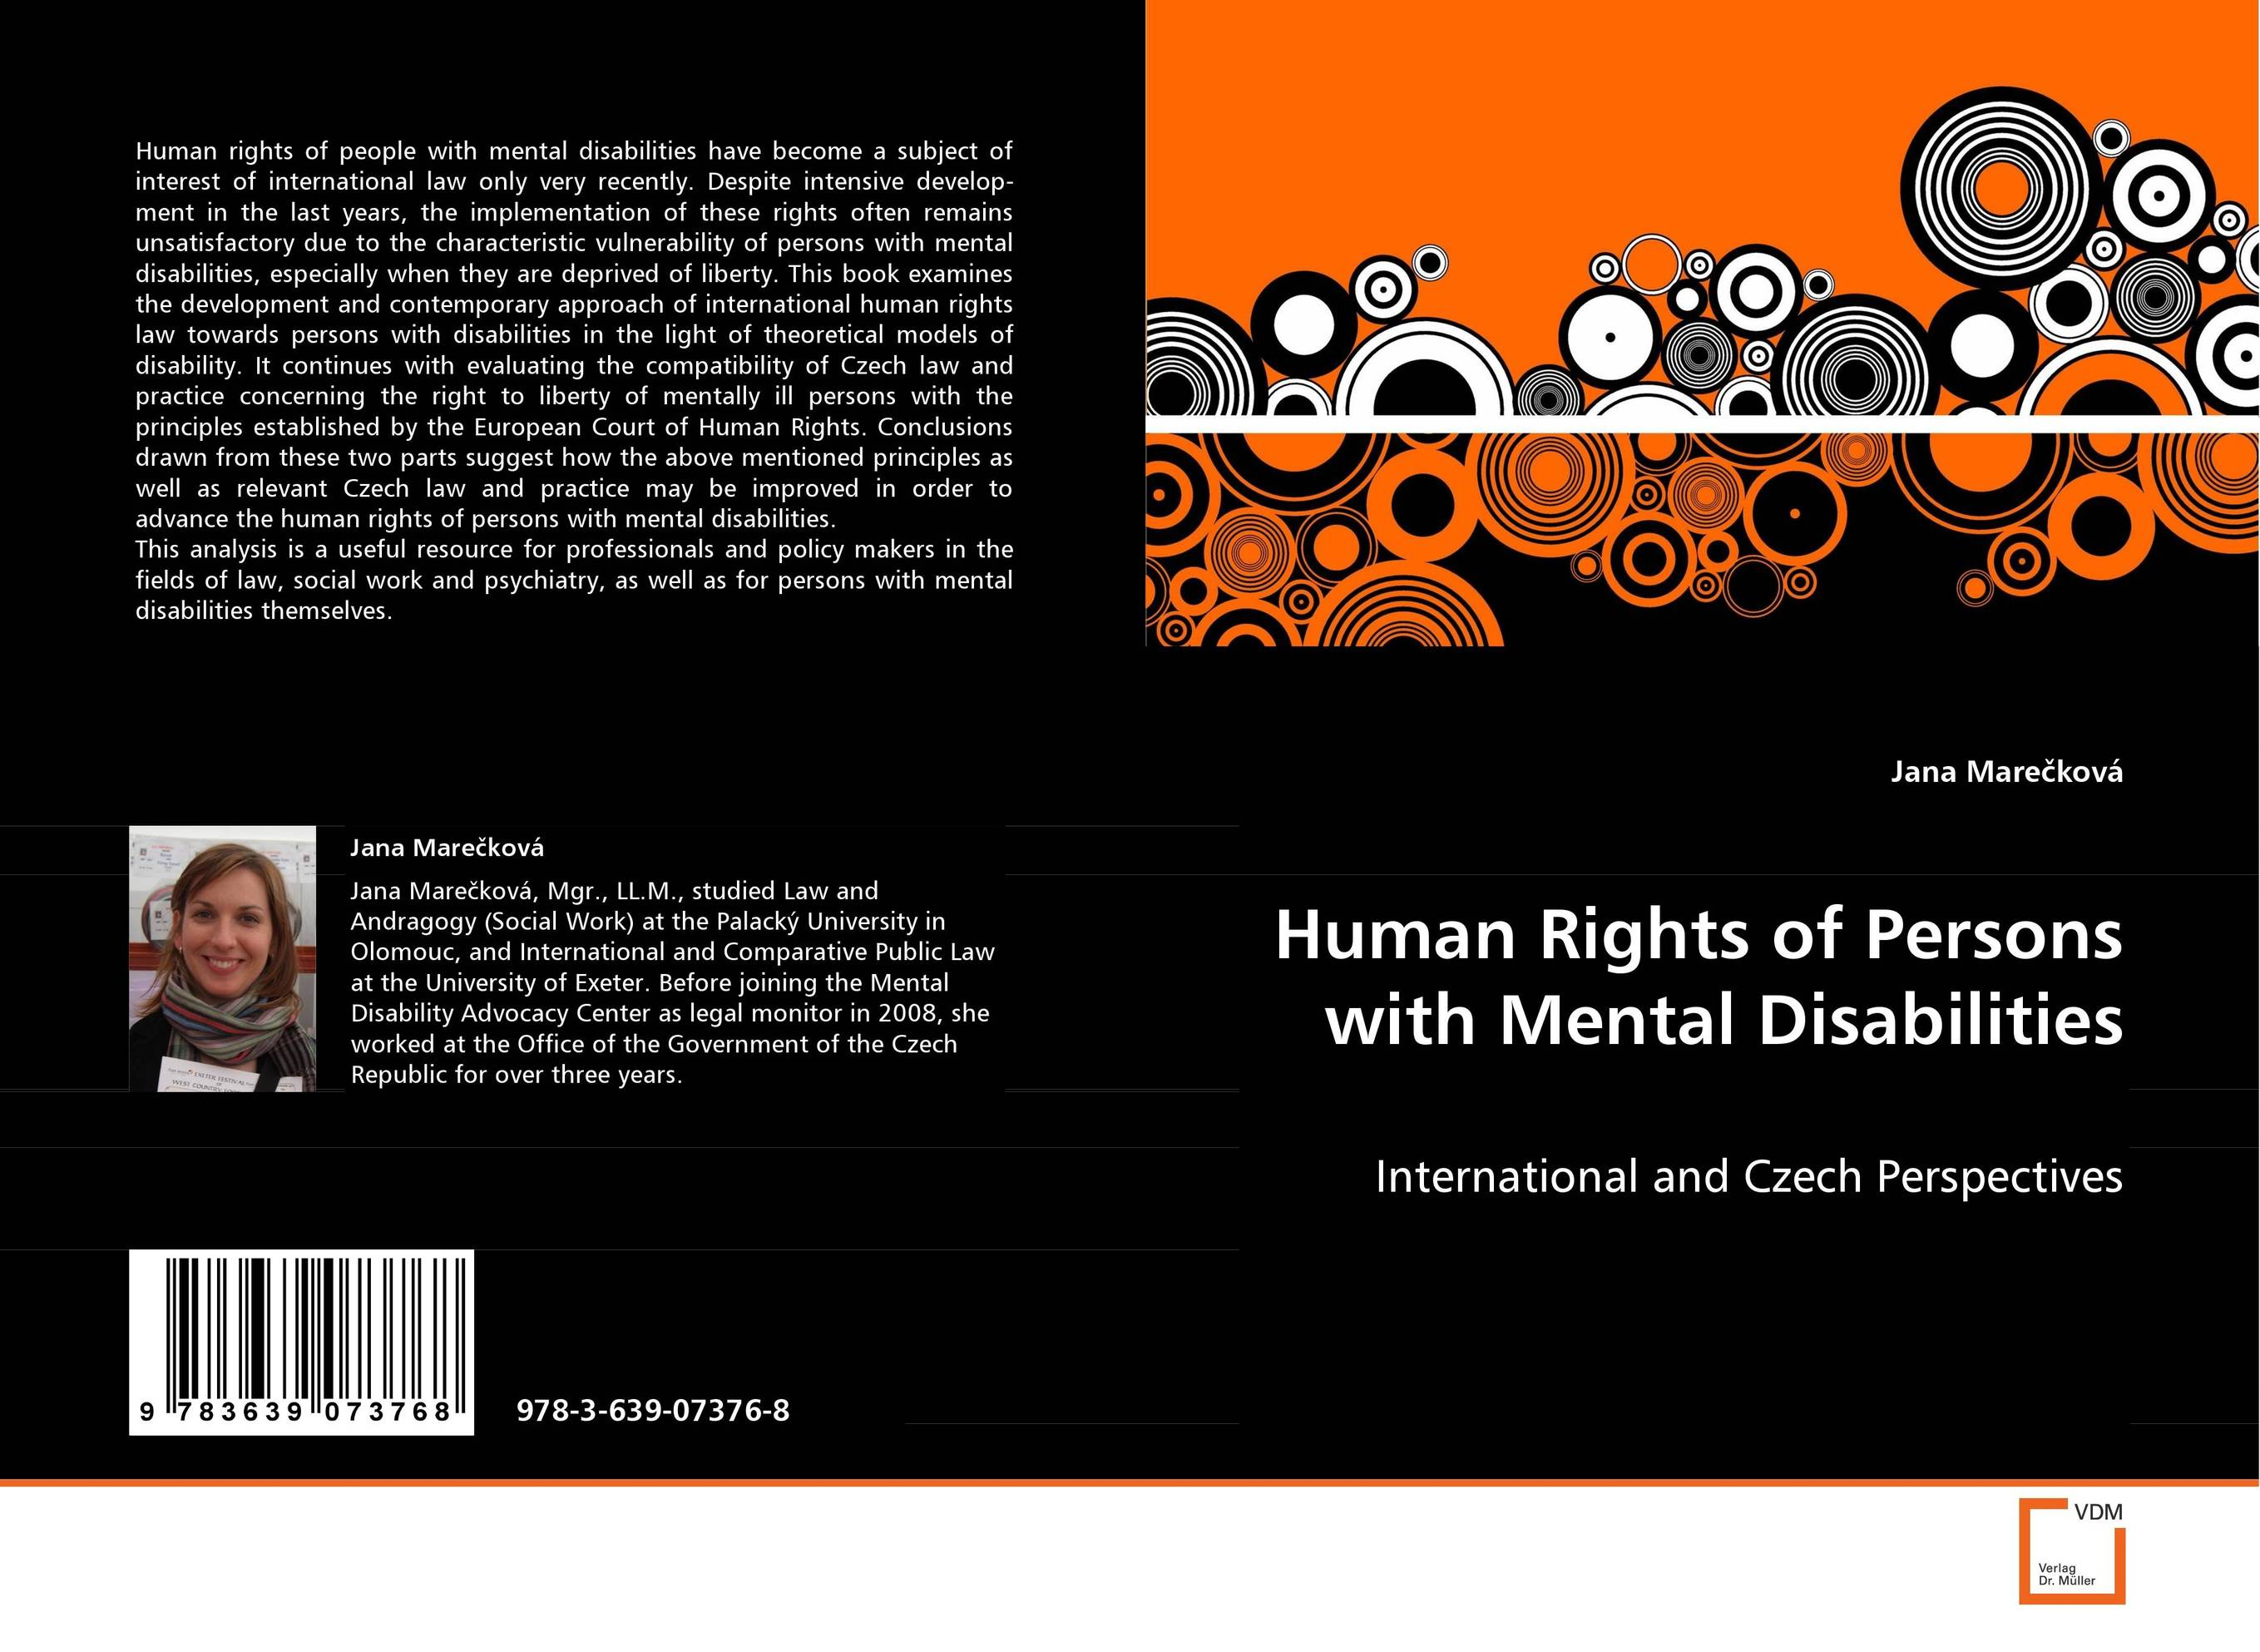 Human Rights of Persons with Mental Disabilities foreign policy as a means for advancing human rights